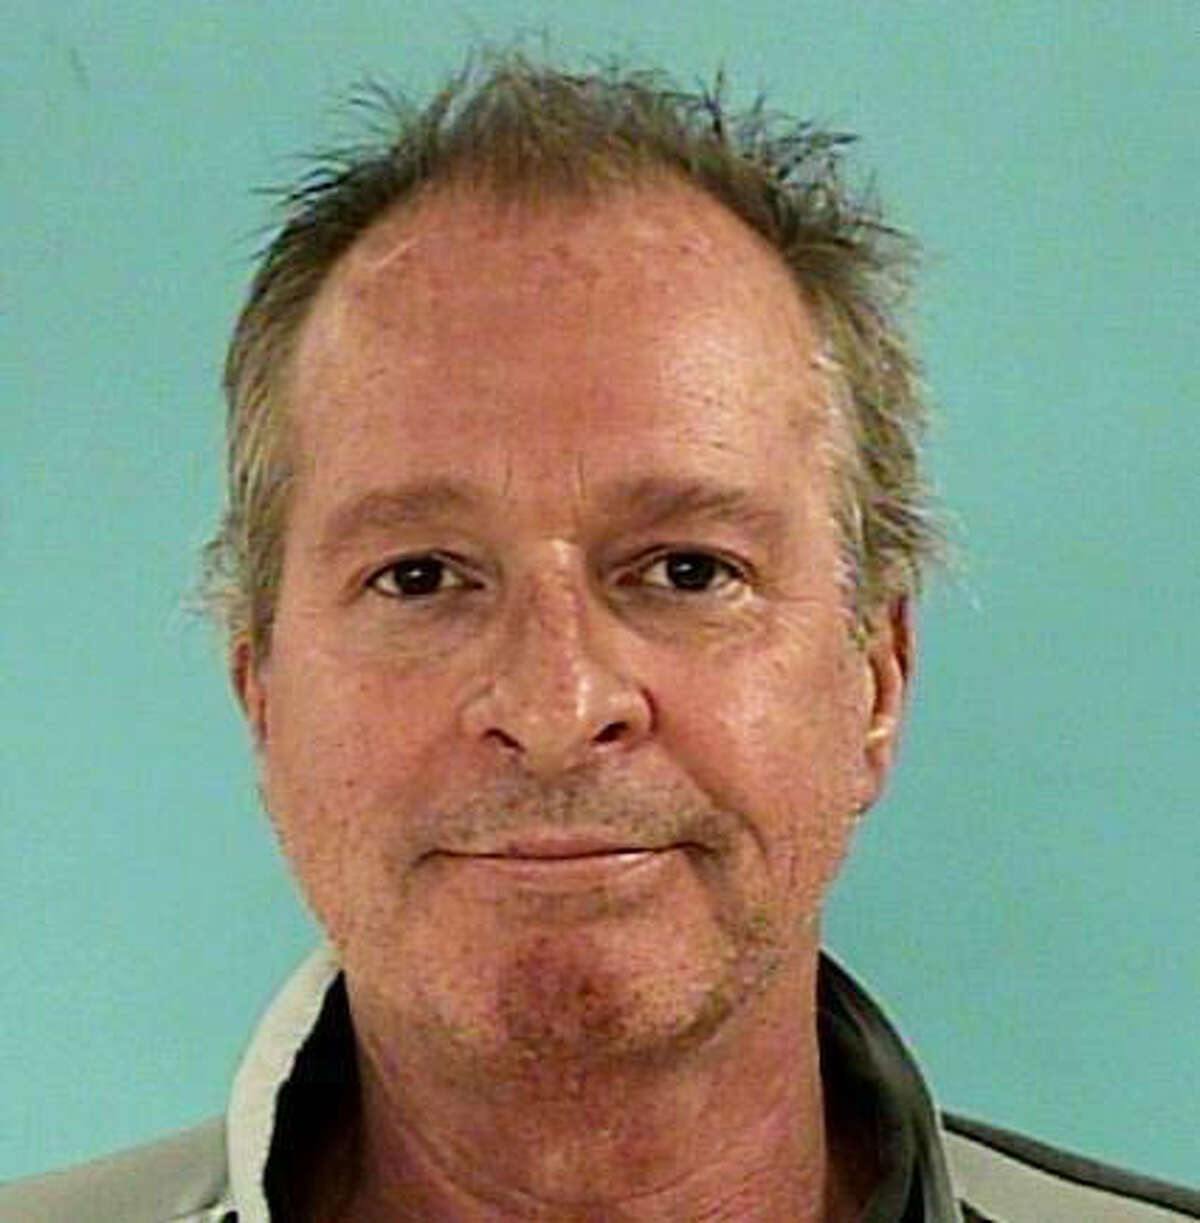 Thomas Anthony Quinlan, 58, is jailed in the shooting death of his wife Sunday night at the family home in the 140 block of North April Waters. (Montgomery County Sheriff's Office)